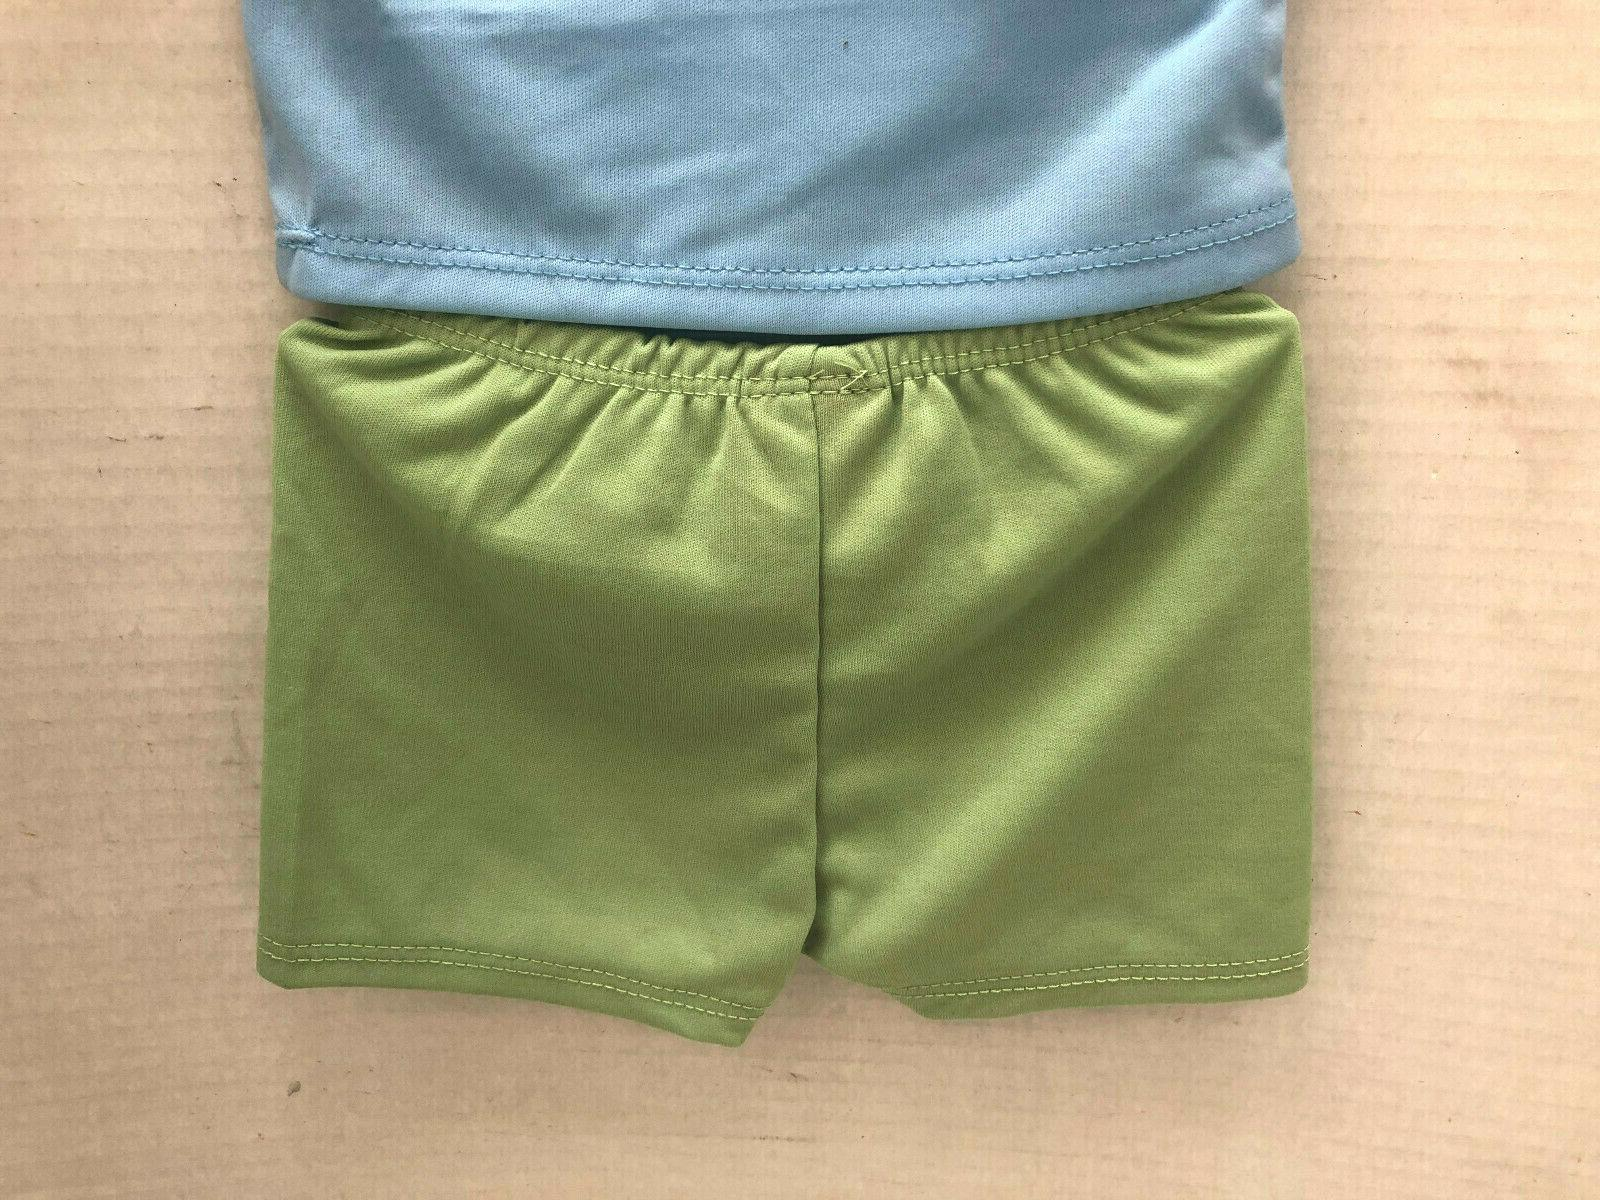 Top Outfit Clothes Size 6-9